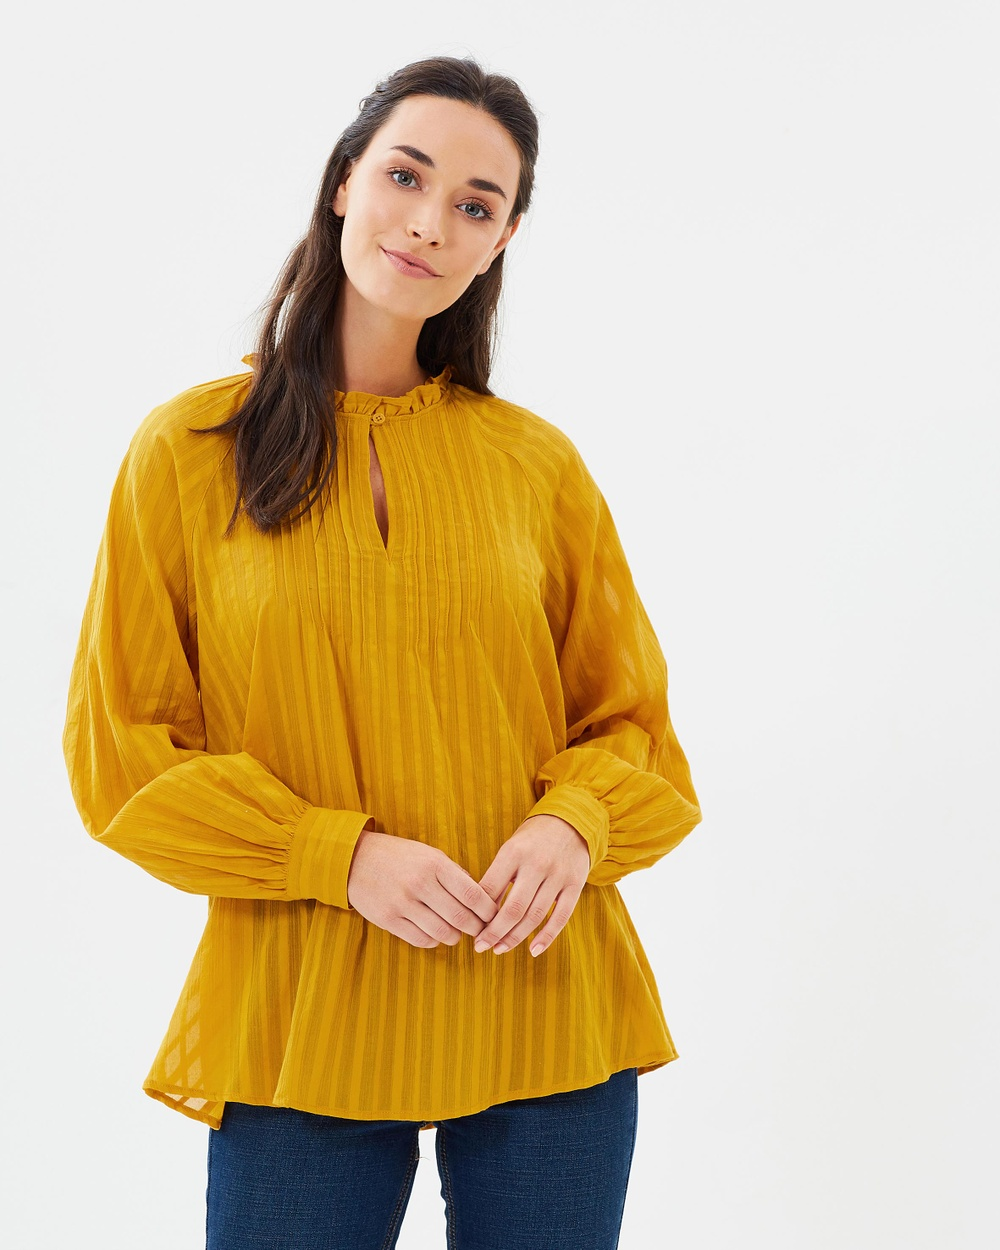 French Connection Moala Cotton Flared Top Tops Yellow Moala Cotton Flared Top